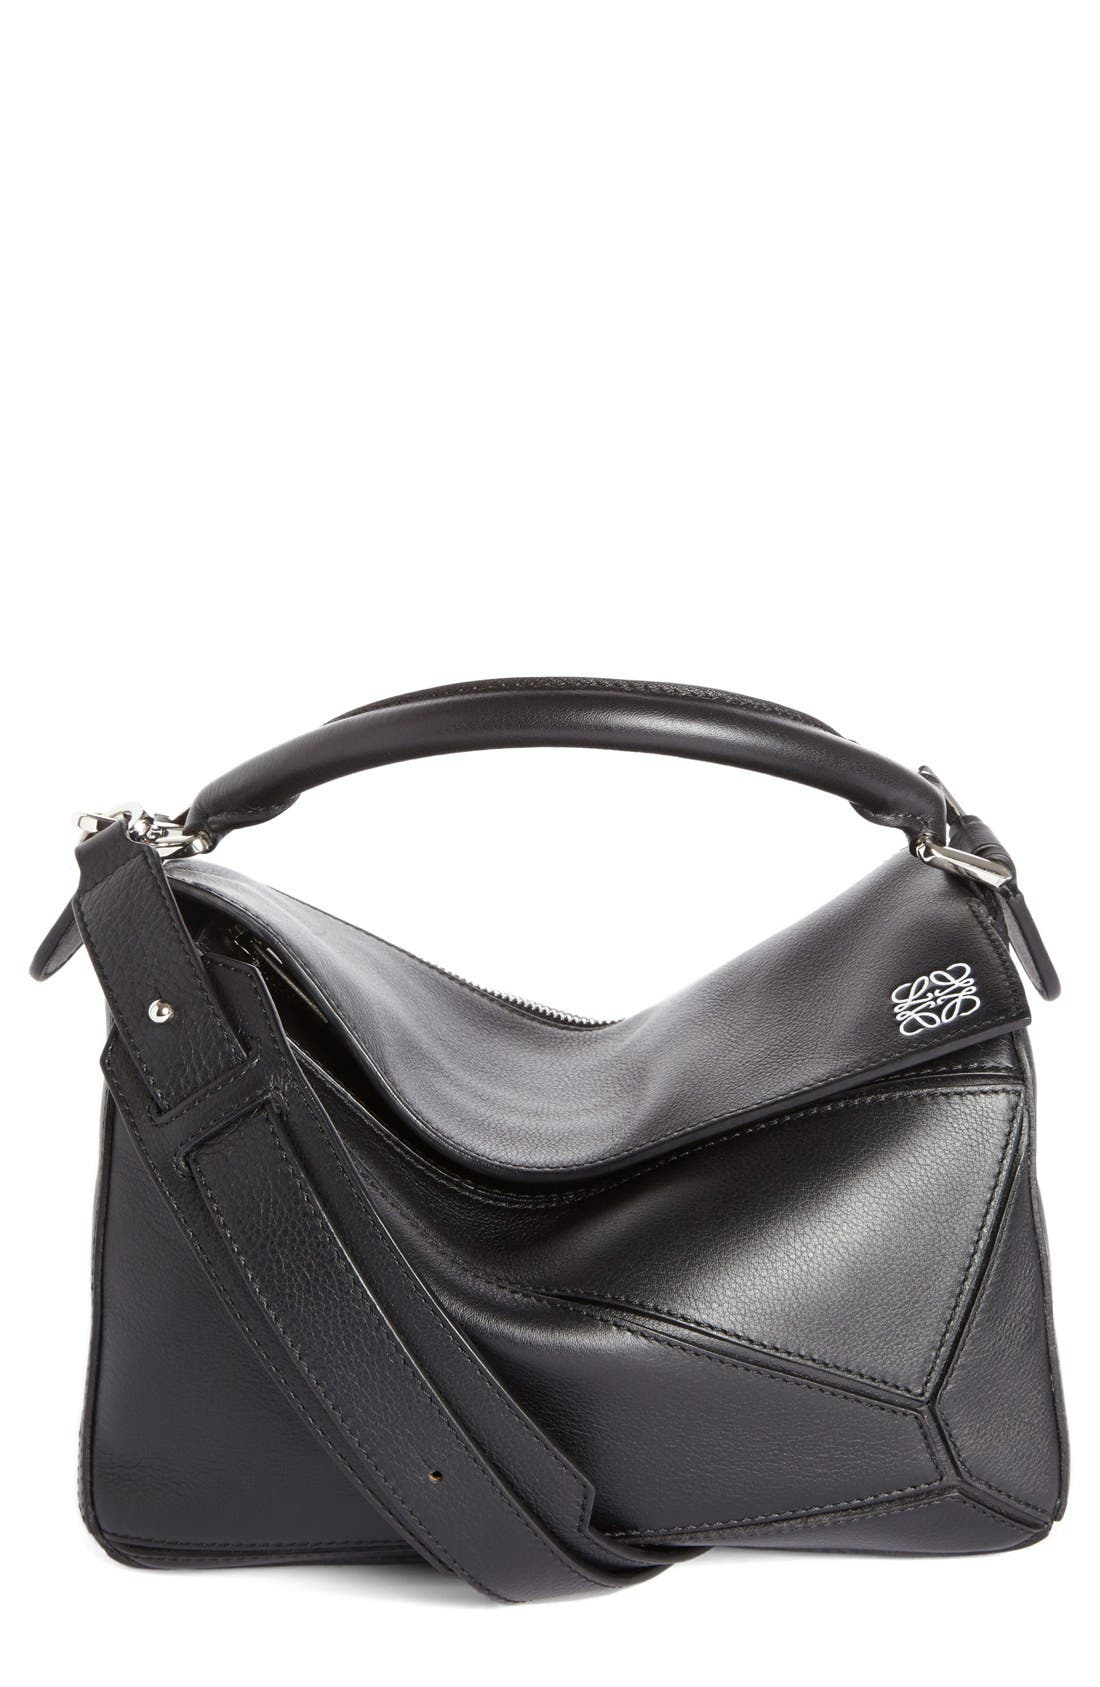 Main Image - Loewe 'Small Puzzle' Calfskin Leather Bag